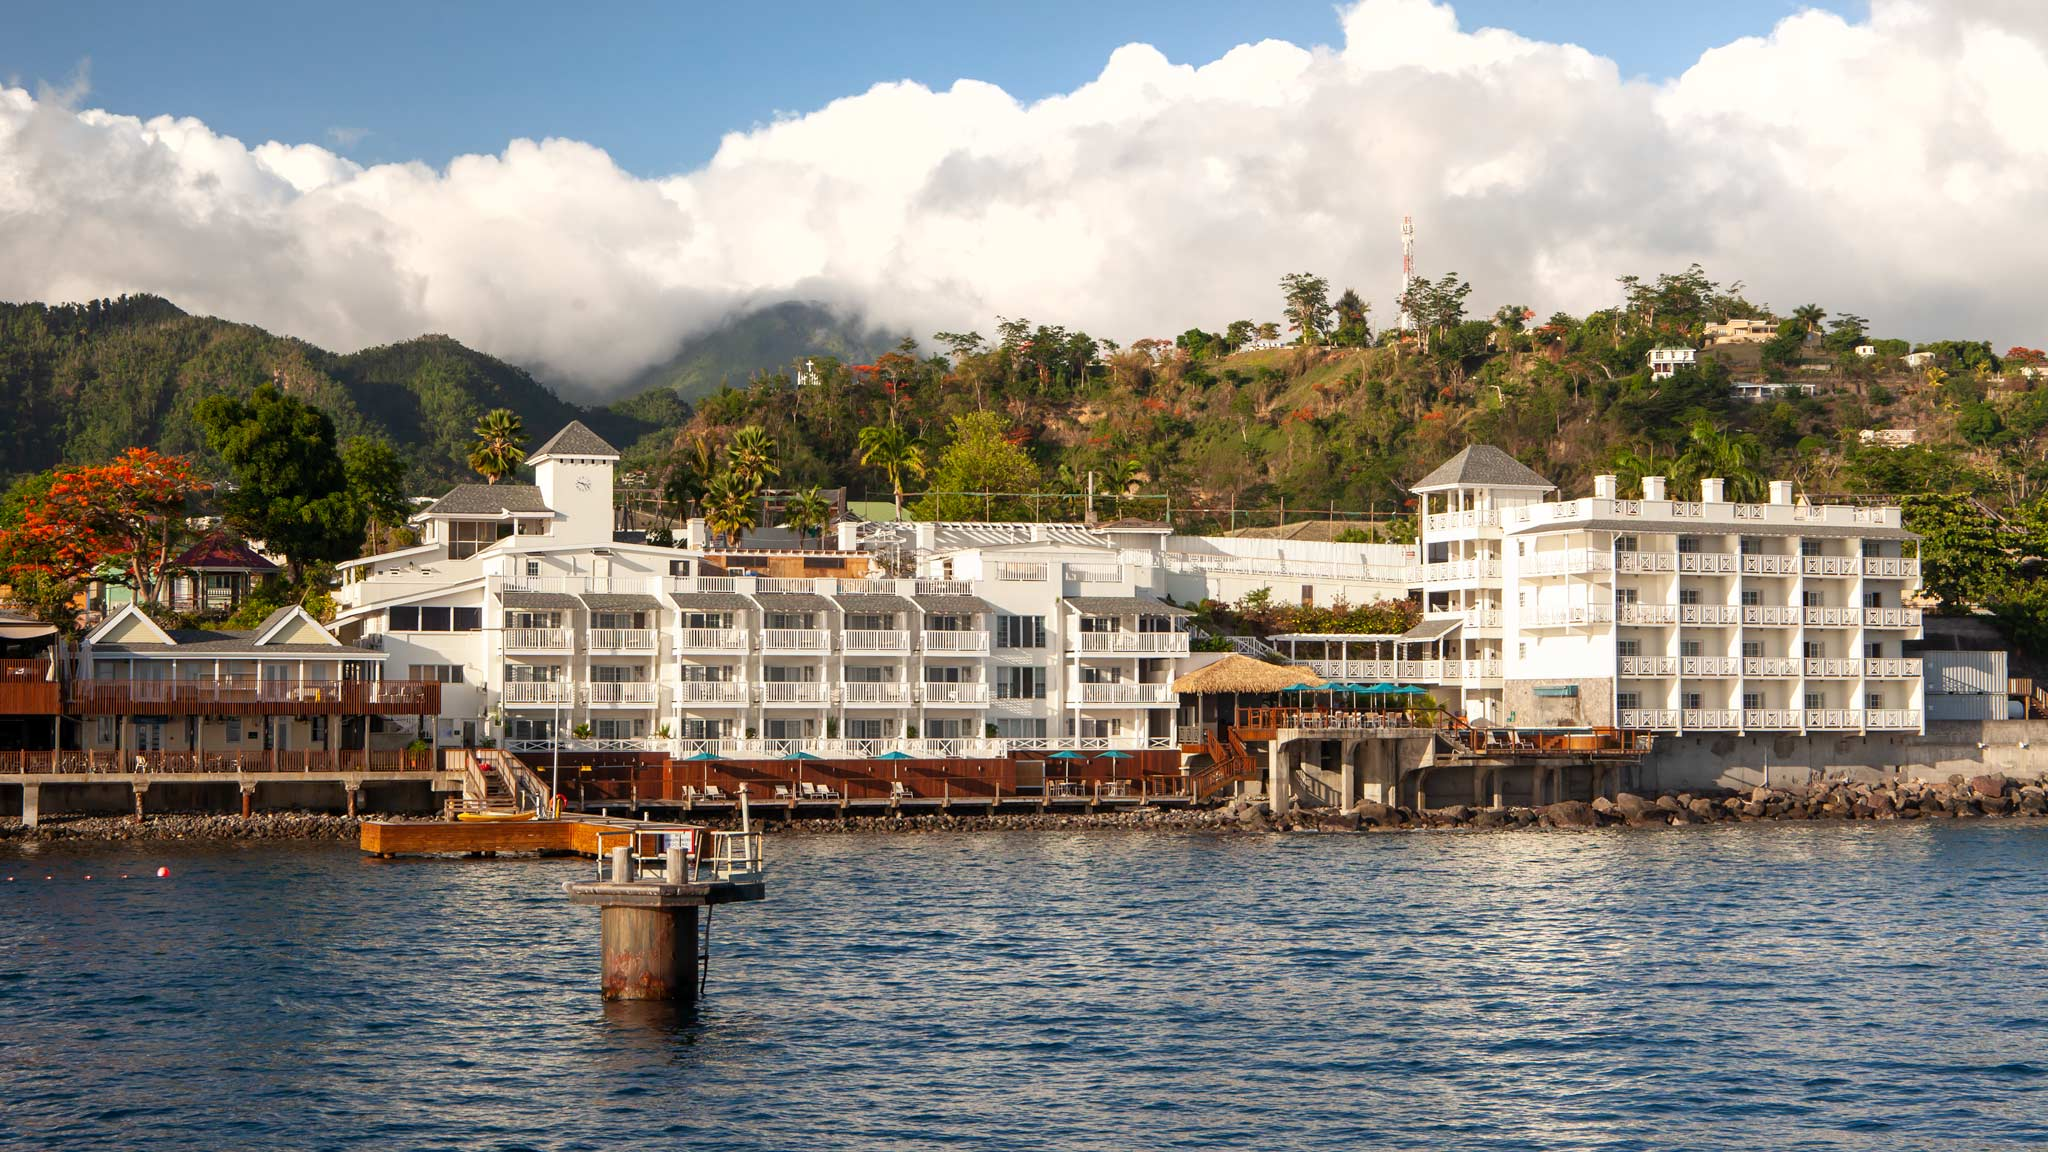 Fort Young Hotel amongst the hills of Dominica as seen from the ocean